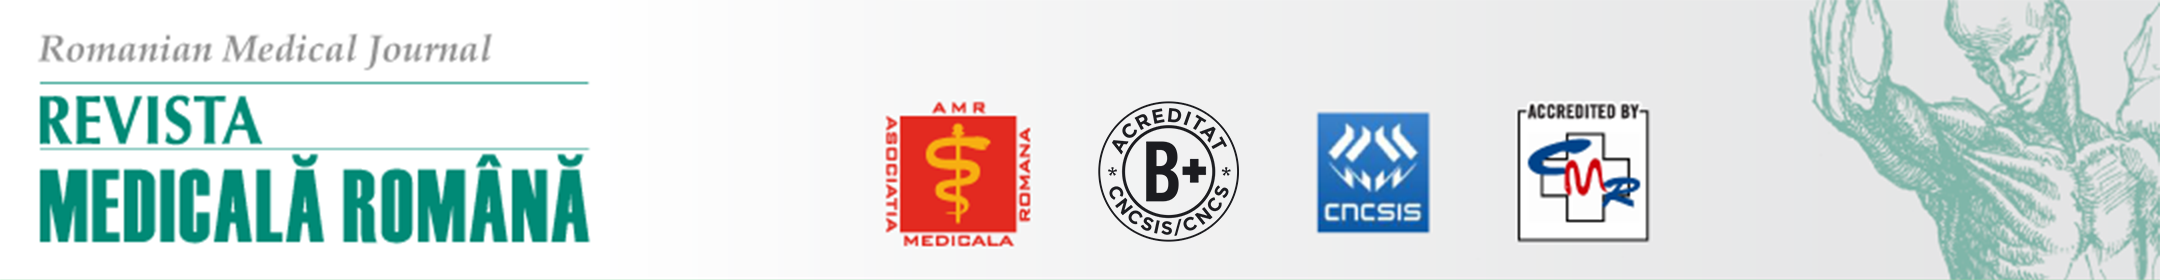 REVISTA MEDICALA ROMANA - Romanian Medical Journal